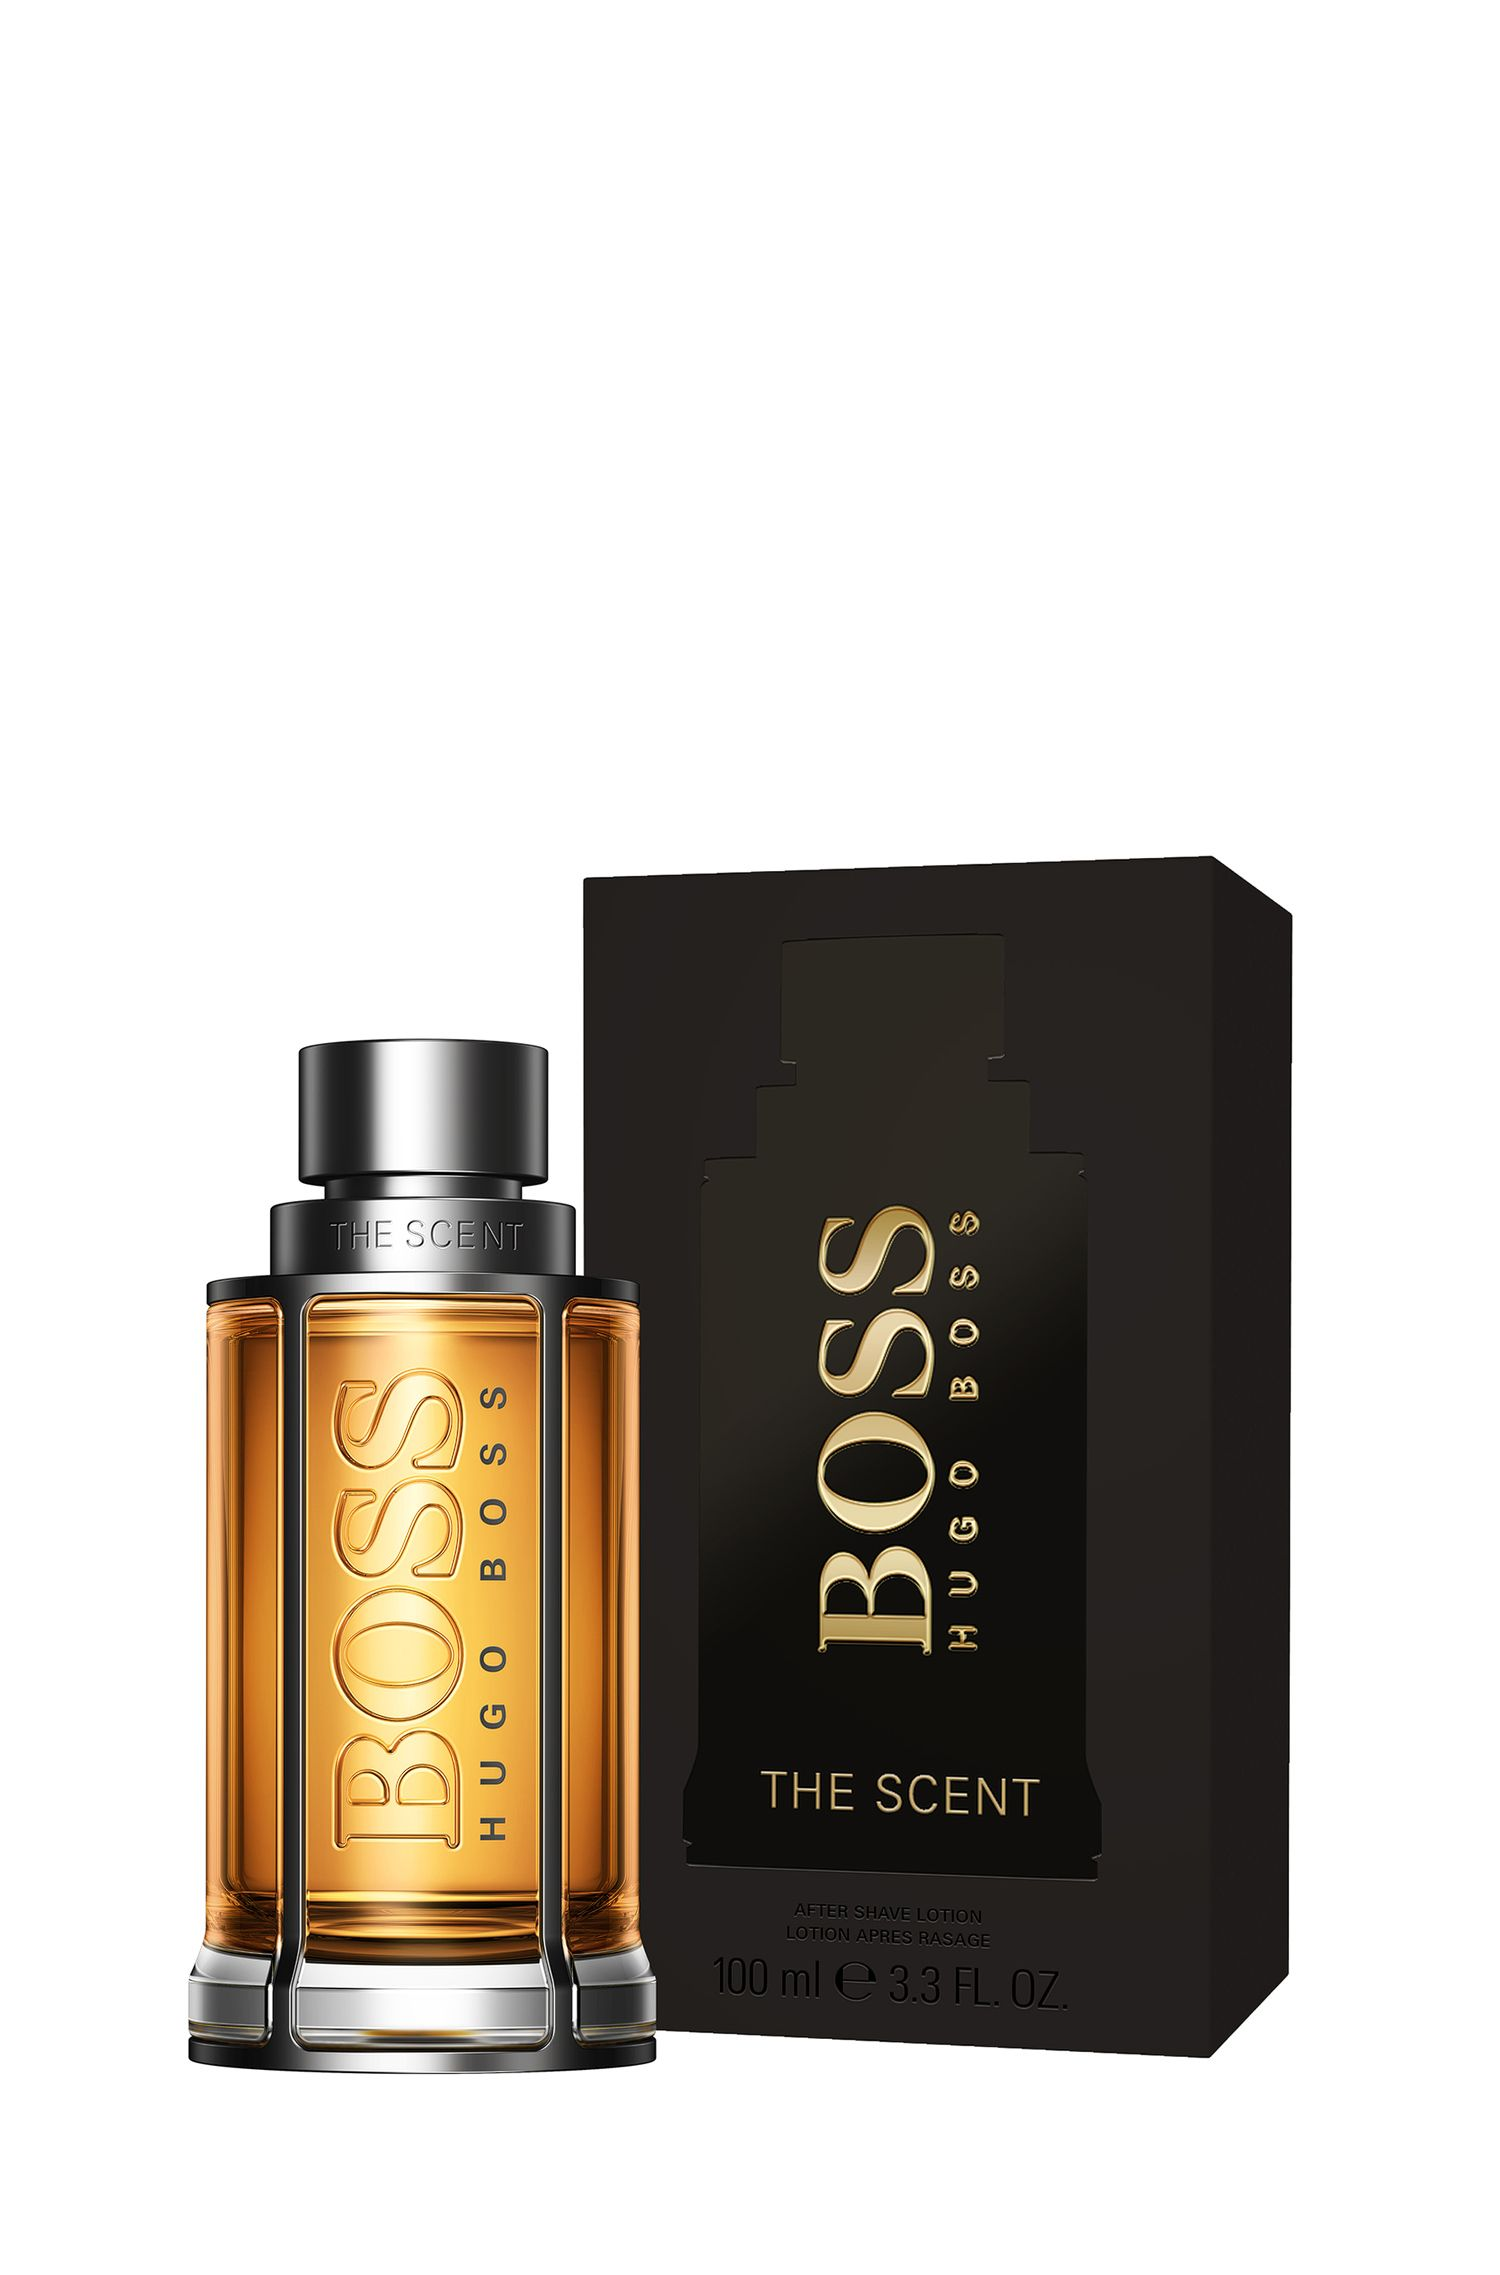 Aftershave BOSS The Scent de 100ml